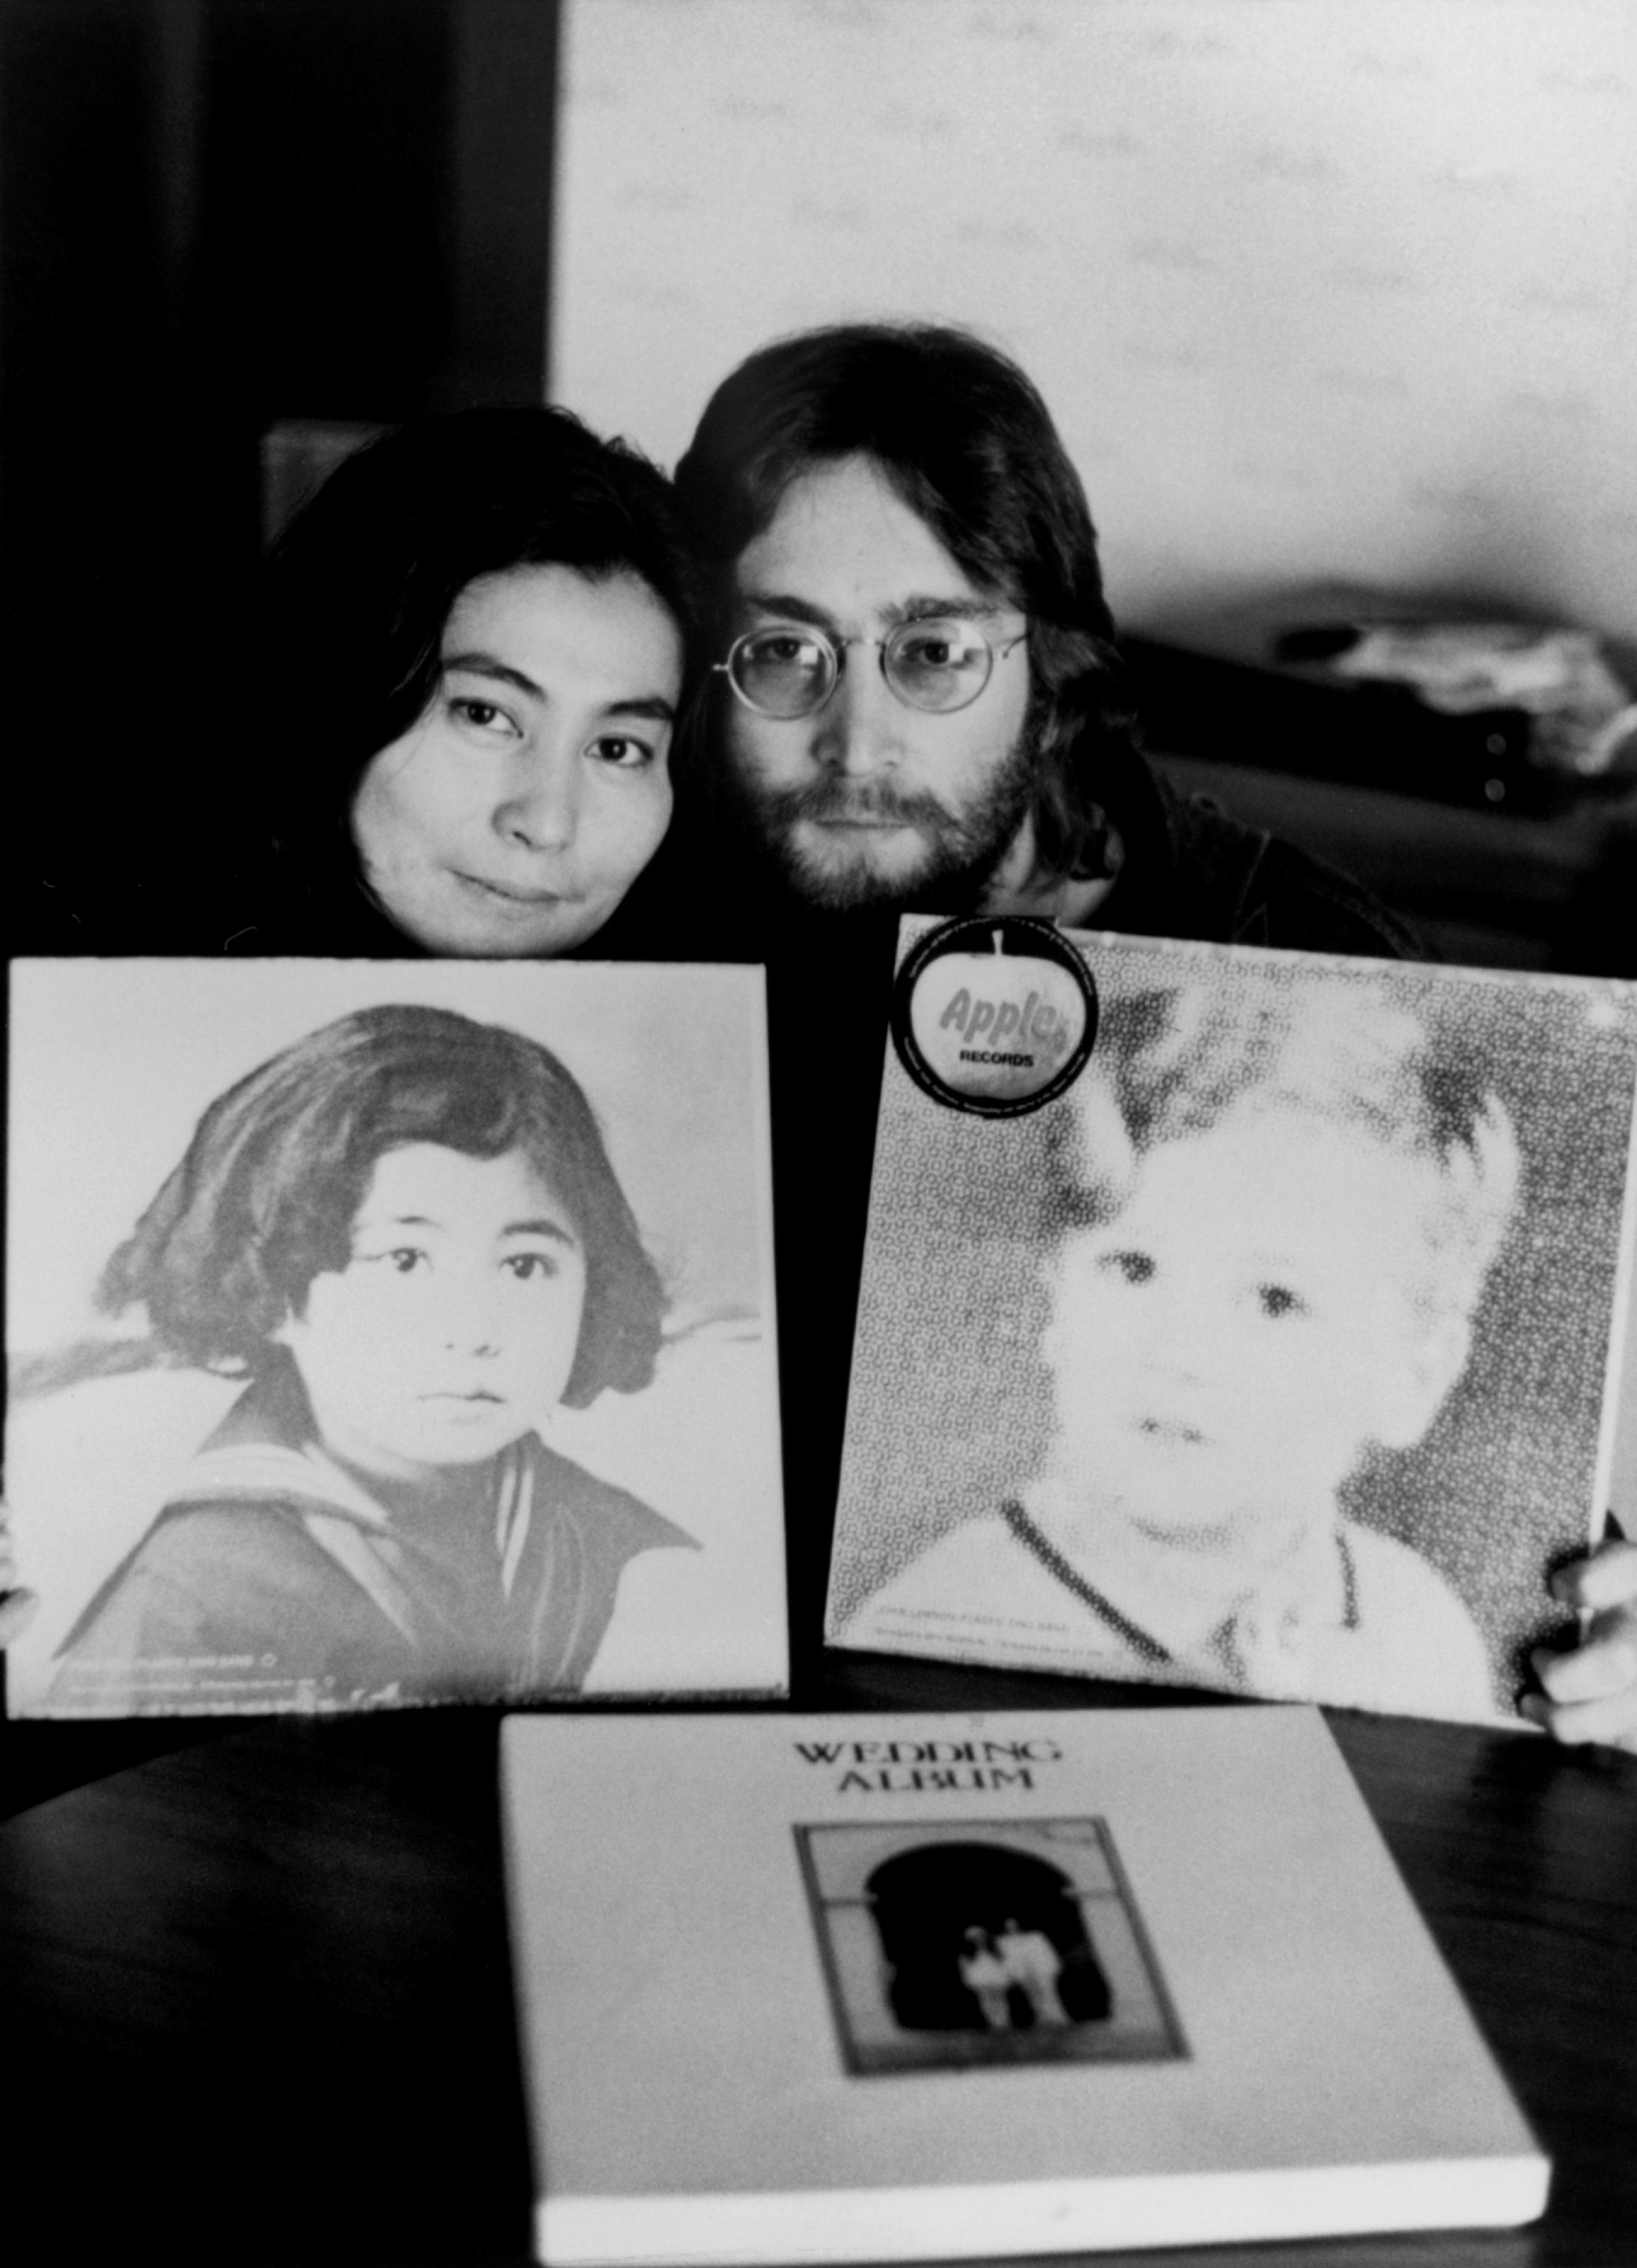 About The Artist John Lennon Photos